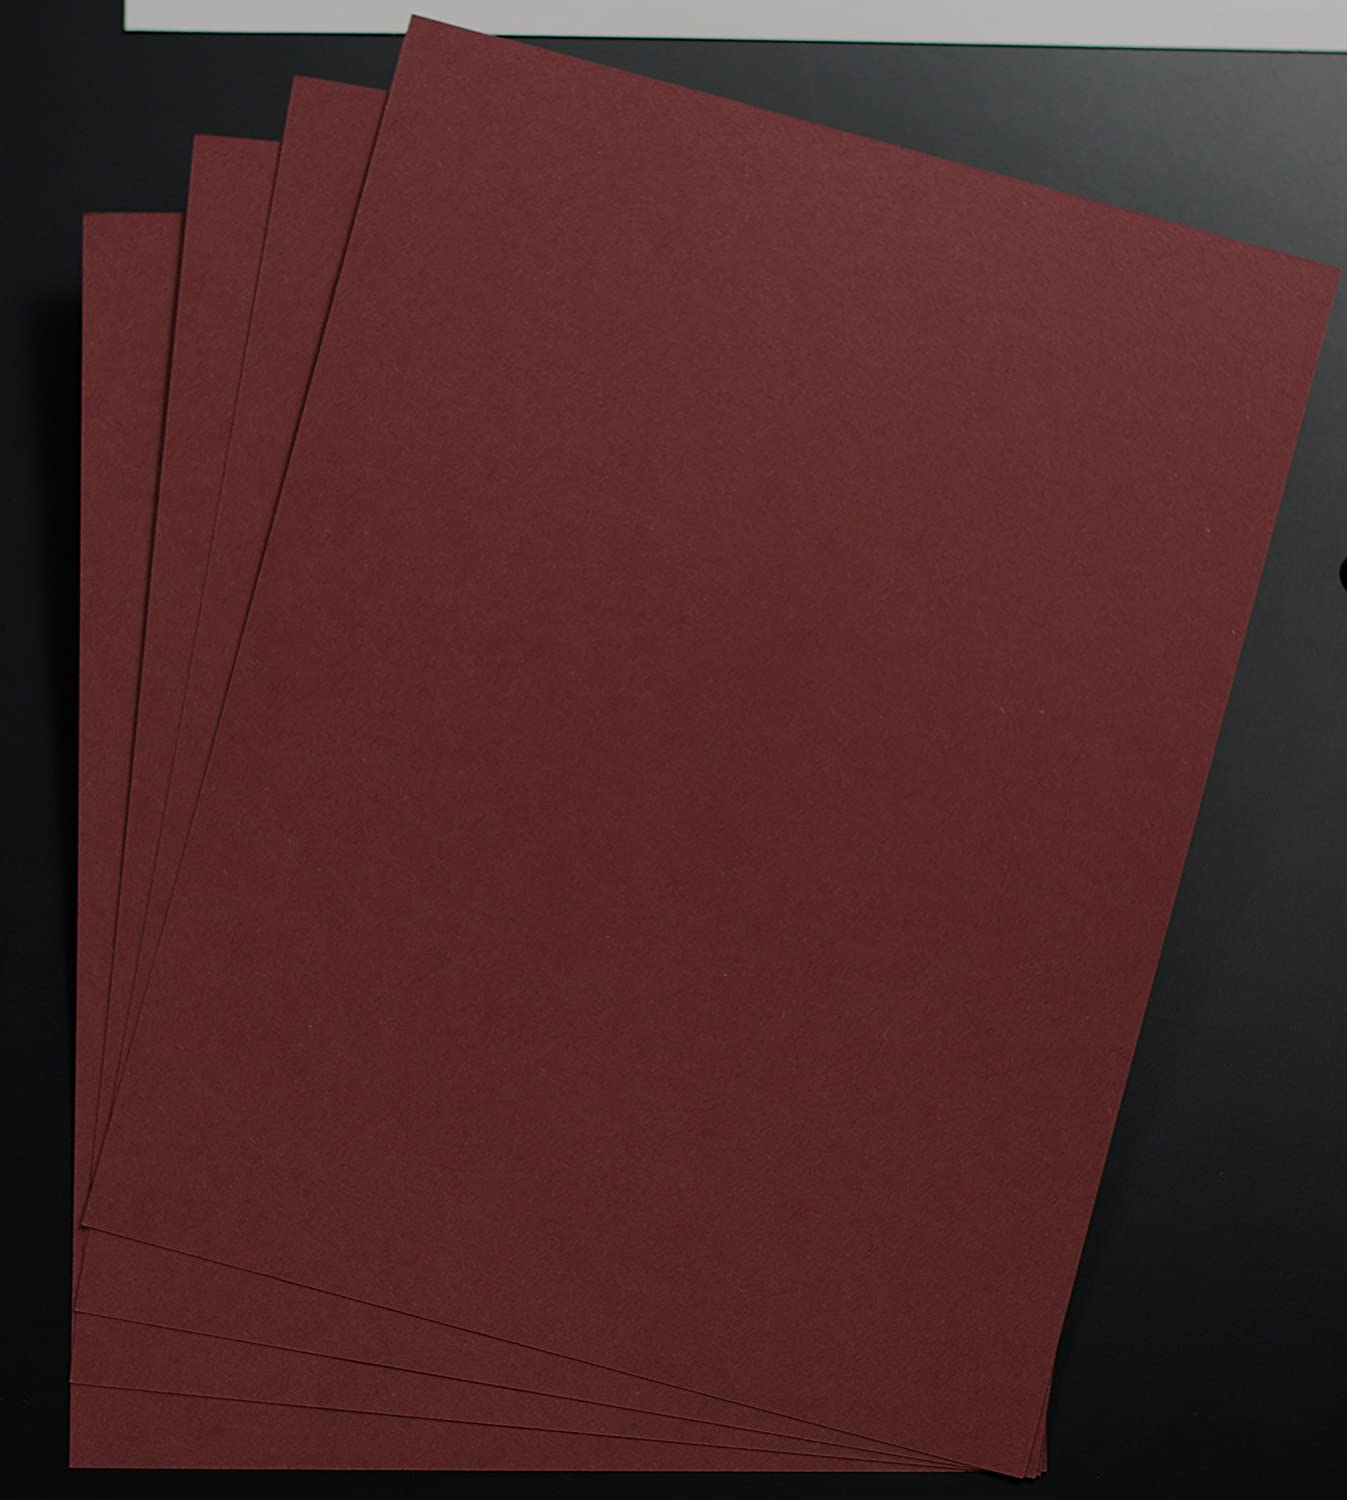 Gold color cardstock paper 5x7 - Amazon Com Basic Burgundy Cardstock Paper 8 5 X 11 Inch 100 Sheets Per Pack Office Products